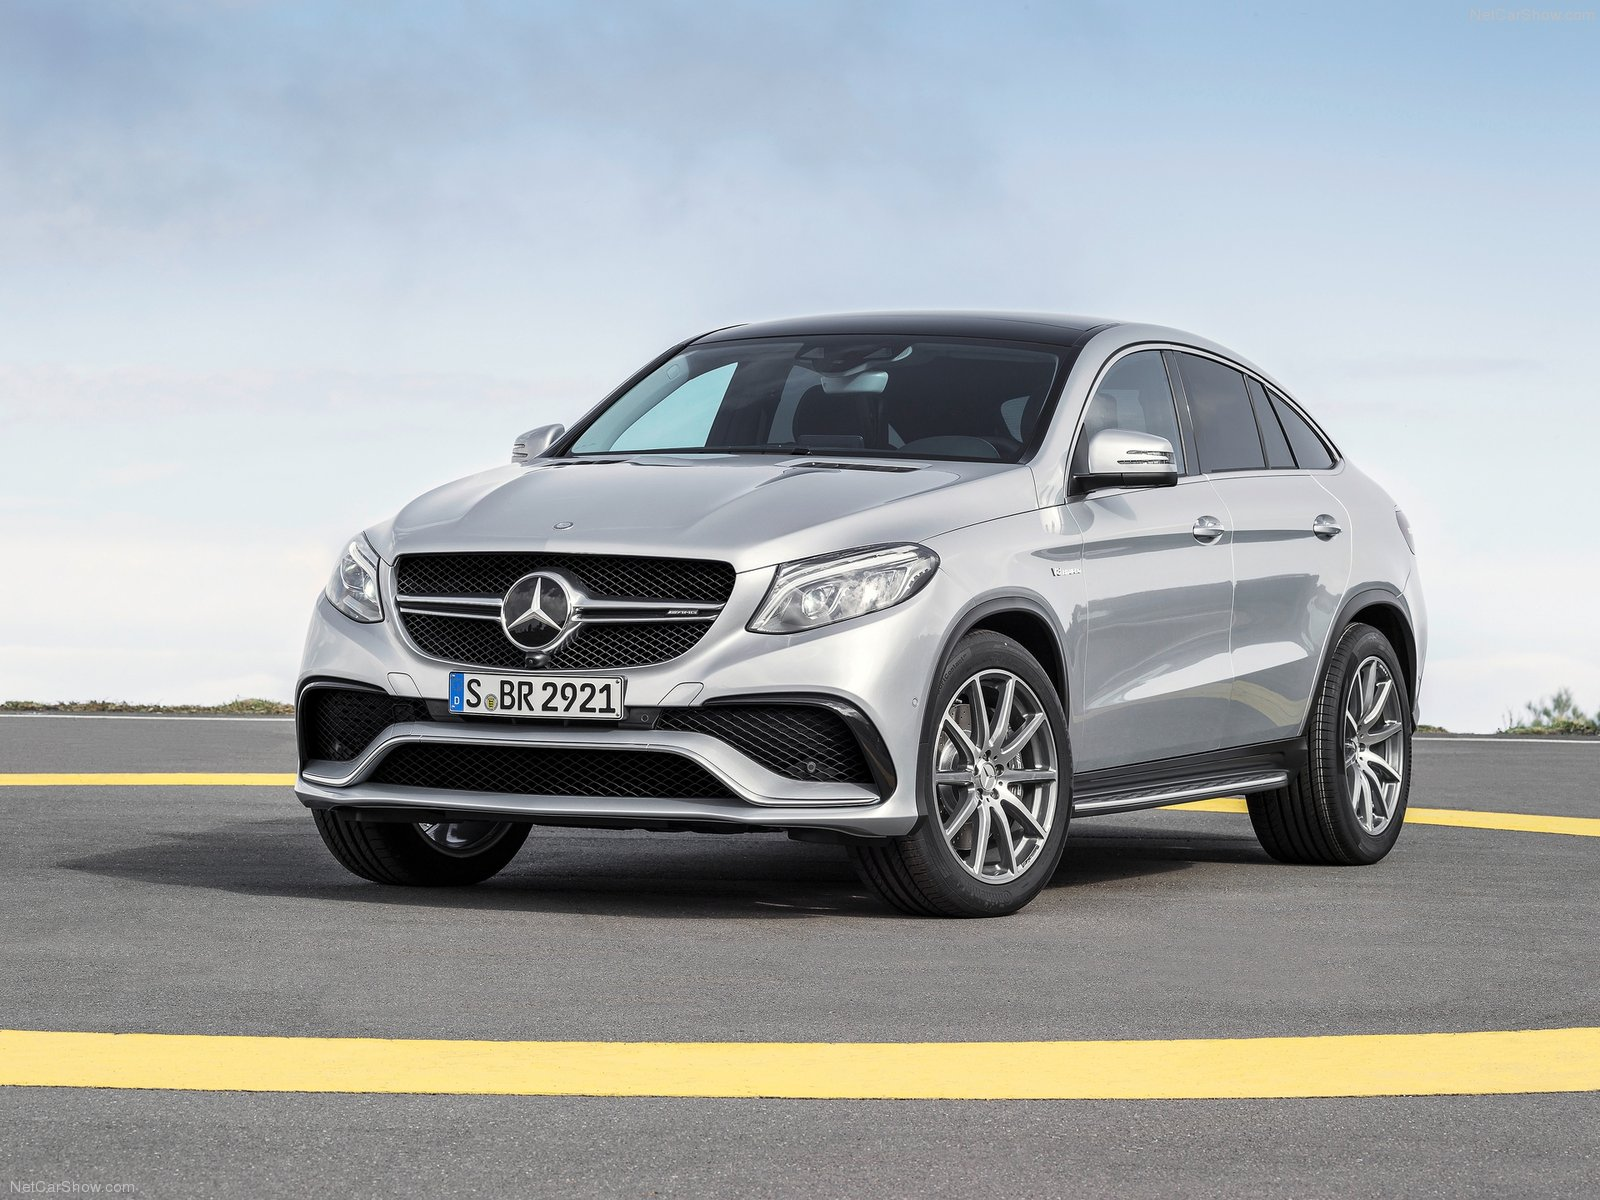 Mercedes-Benz-GLE63_AMG_Coupe-2016-1600-05